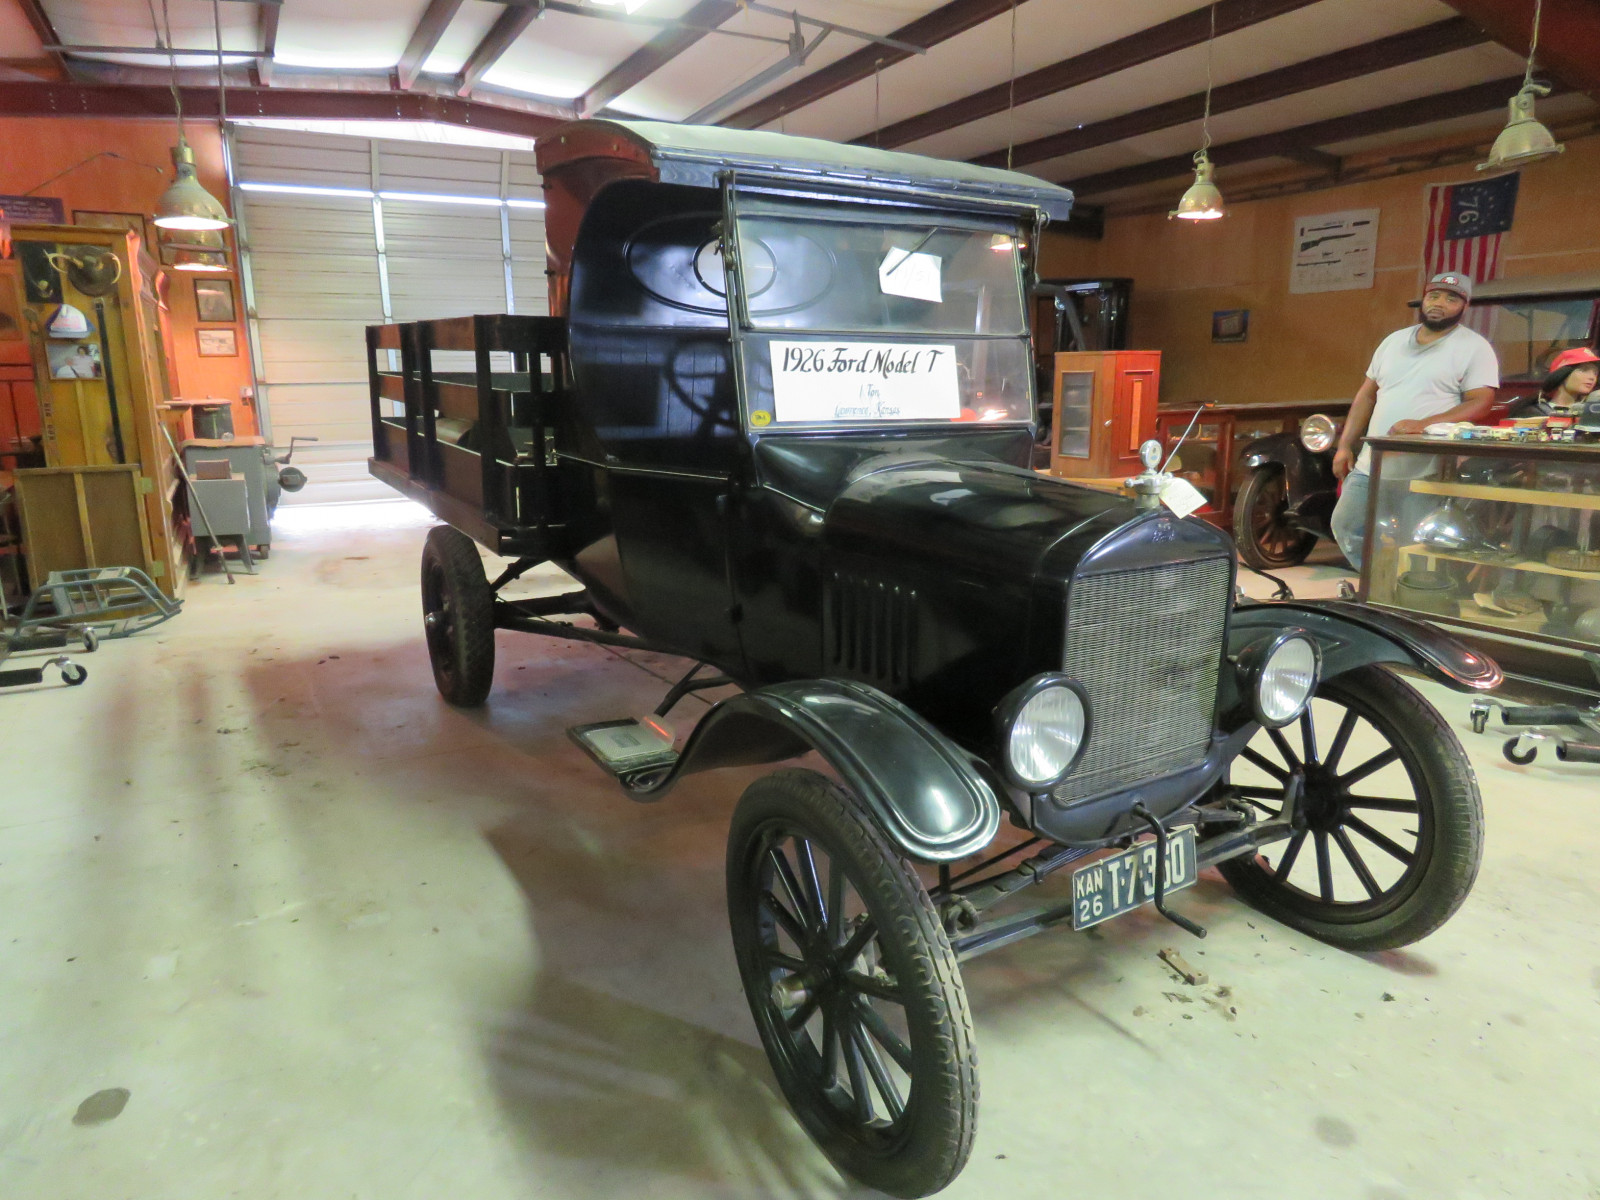 1926 Ford Model T Stakebed Truck - Image 3